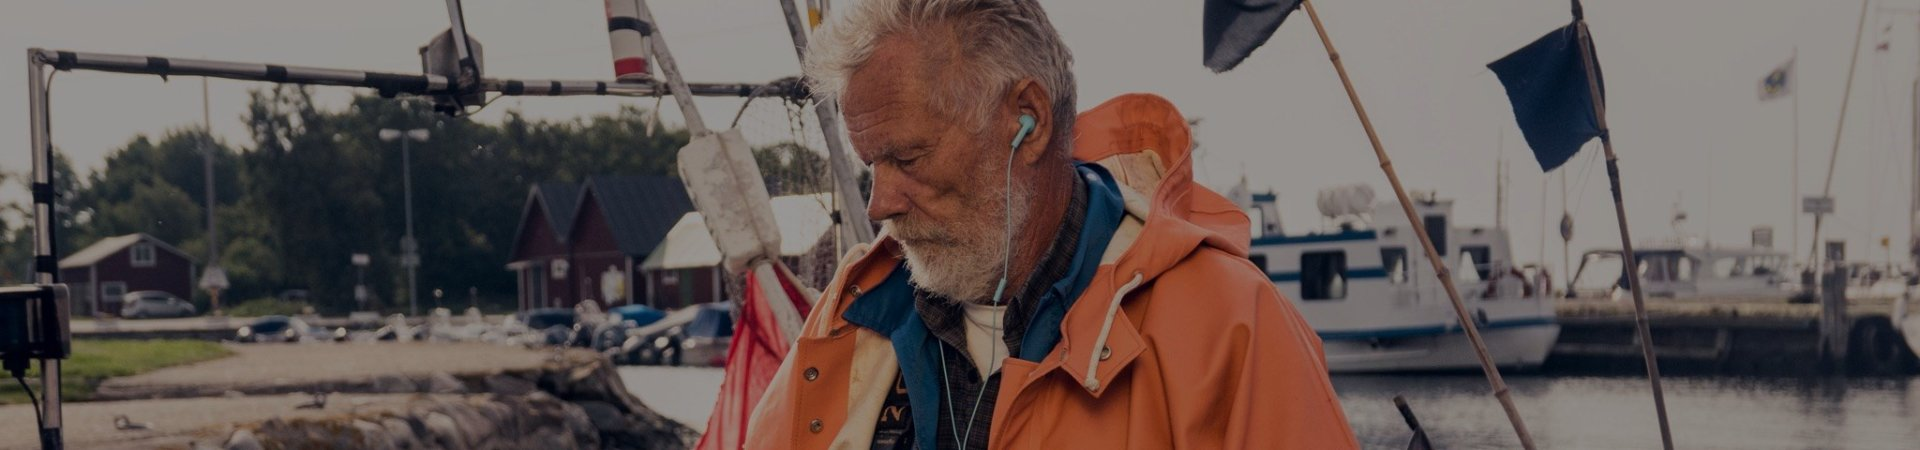 A fisherman listens to an audiobook